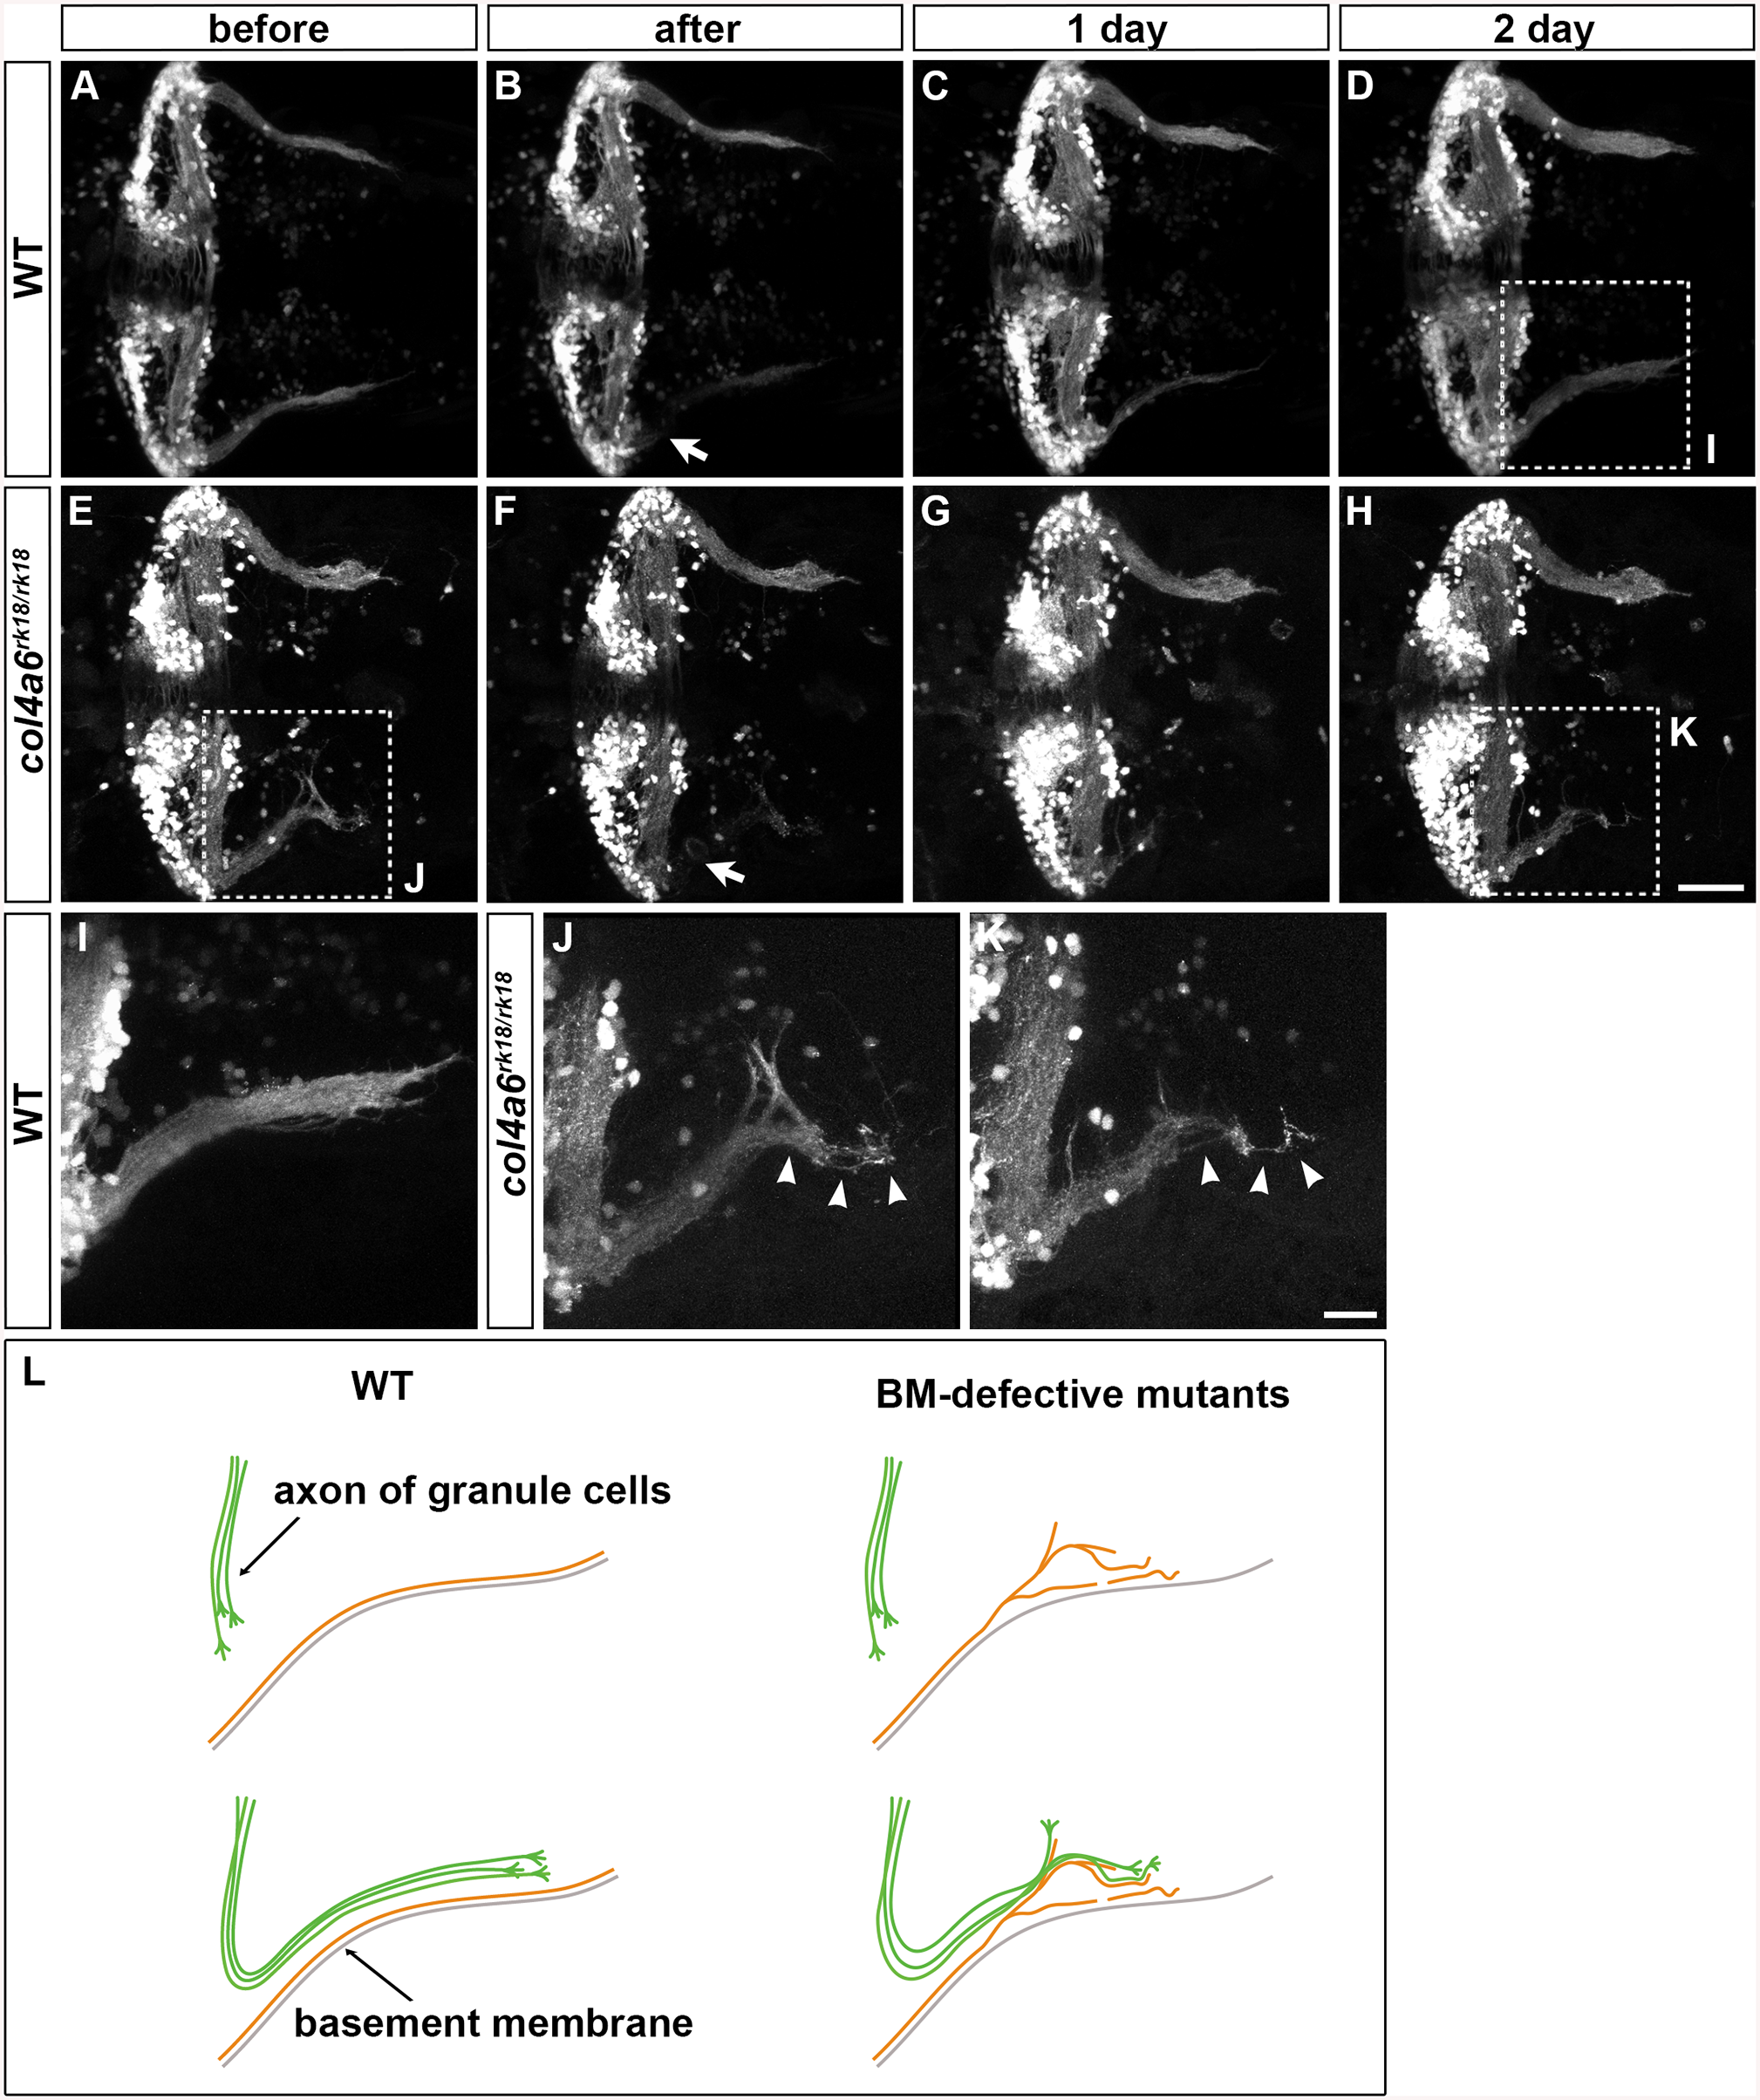 Abnormality in regenerating GC axons is linked to the abnormal BM structure in <i>col4a6</i> mutants.